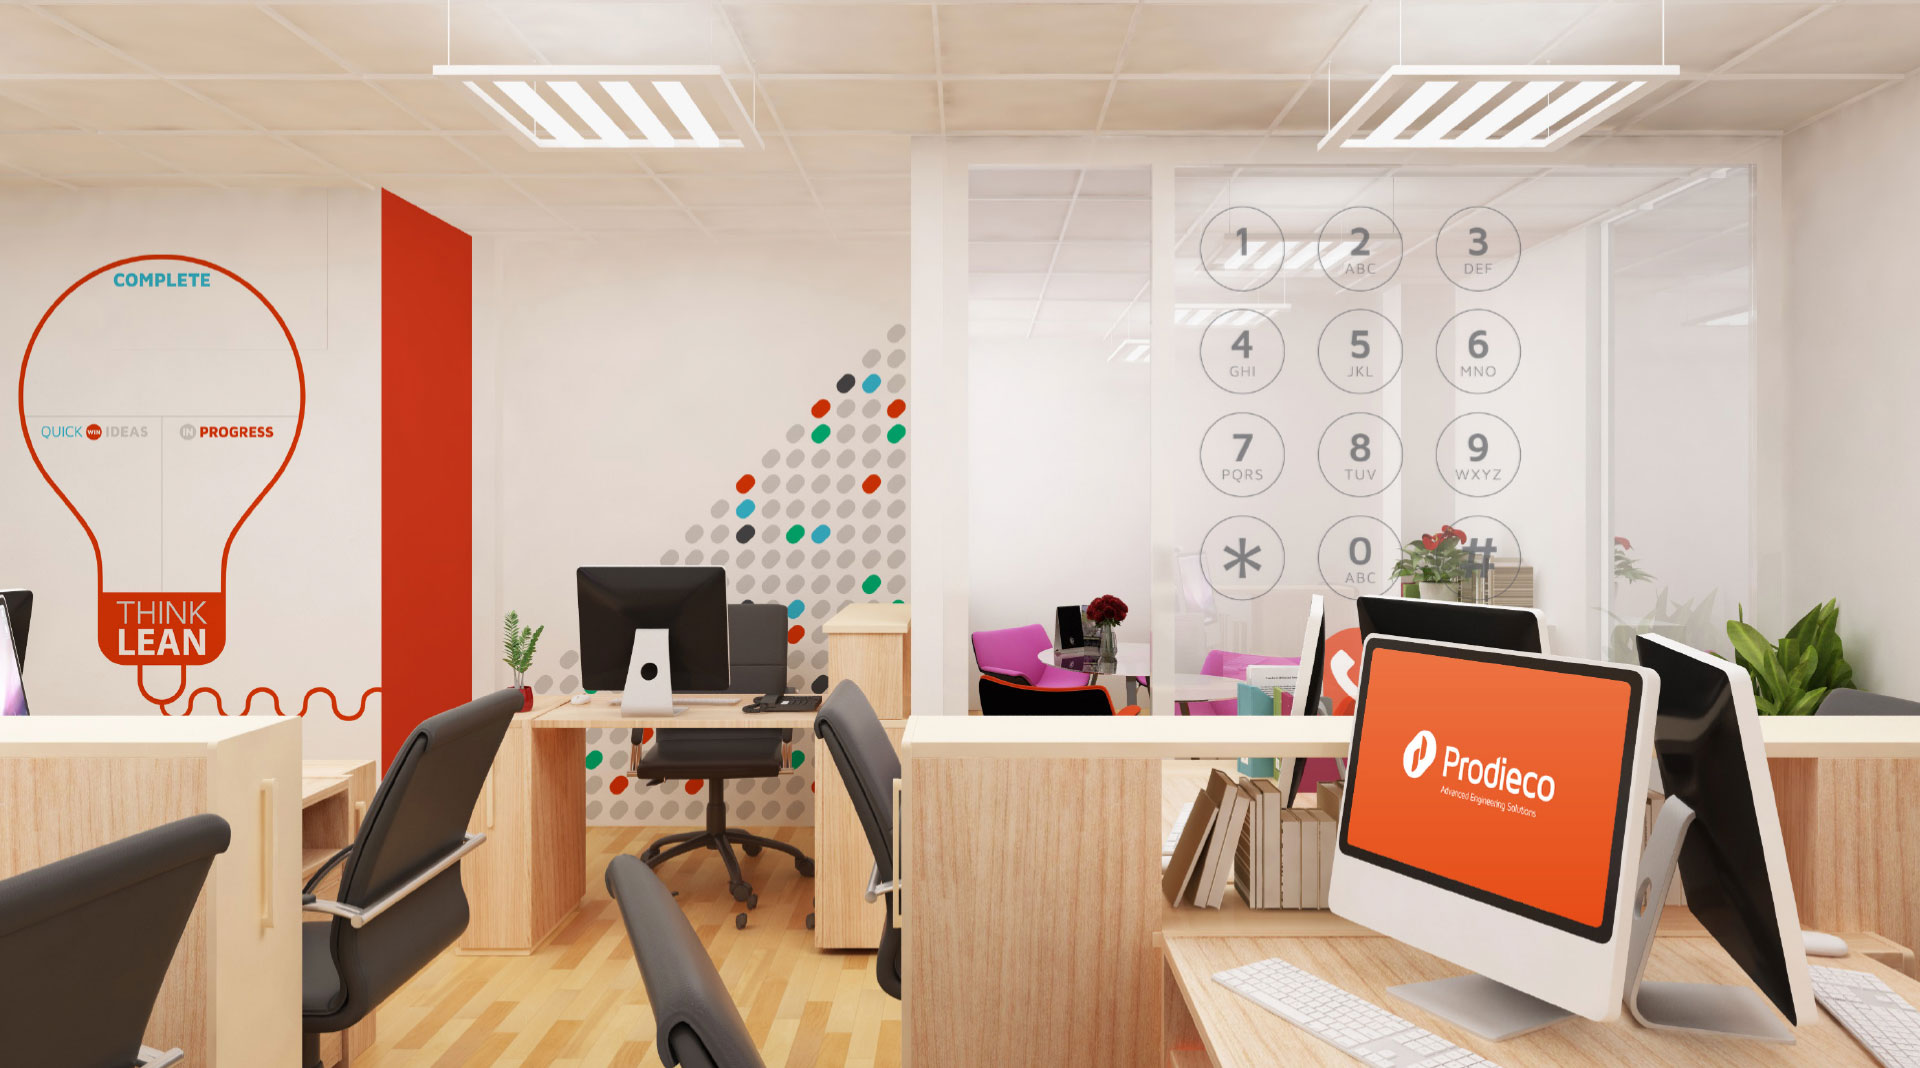 Prodieco Office wall graphics.